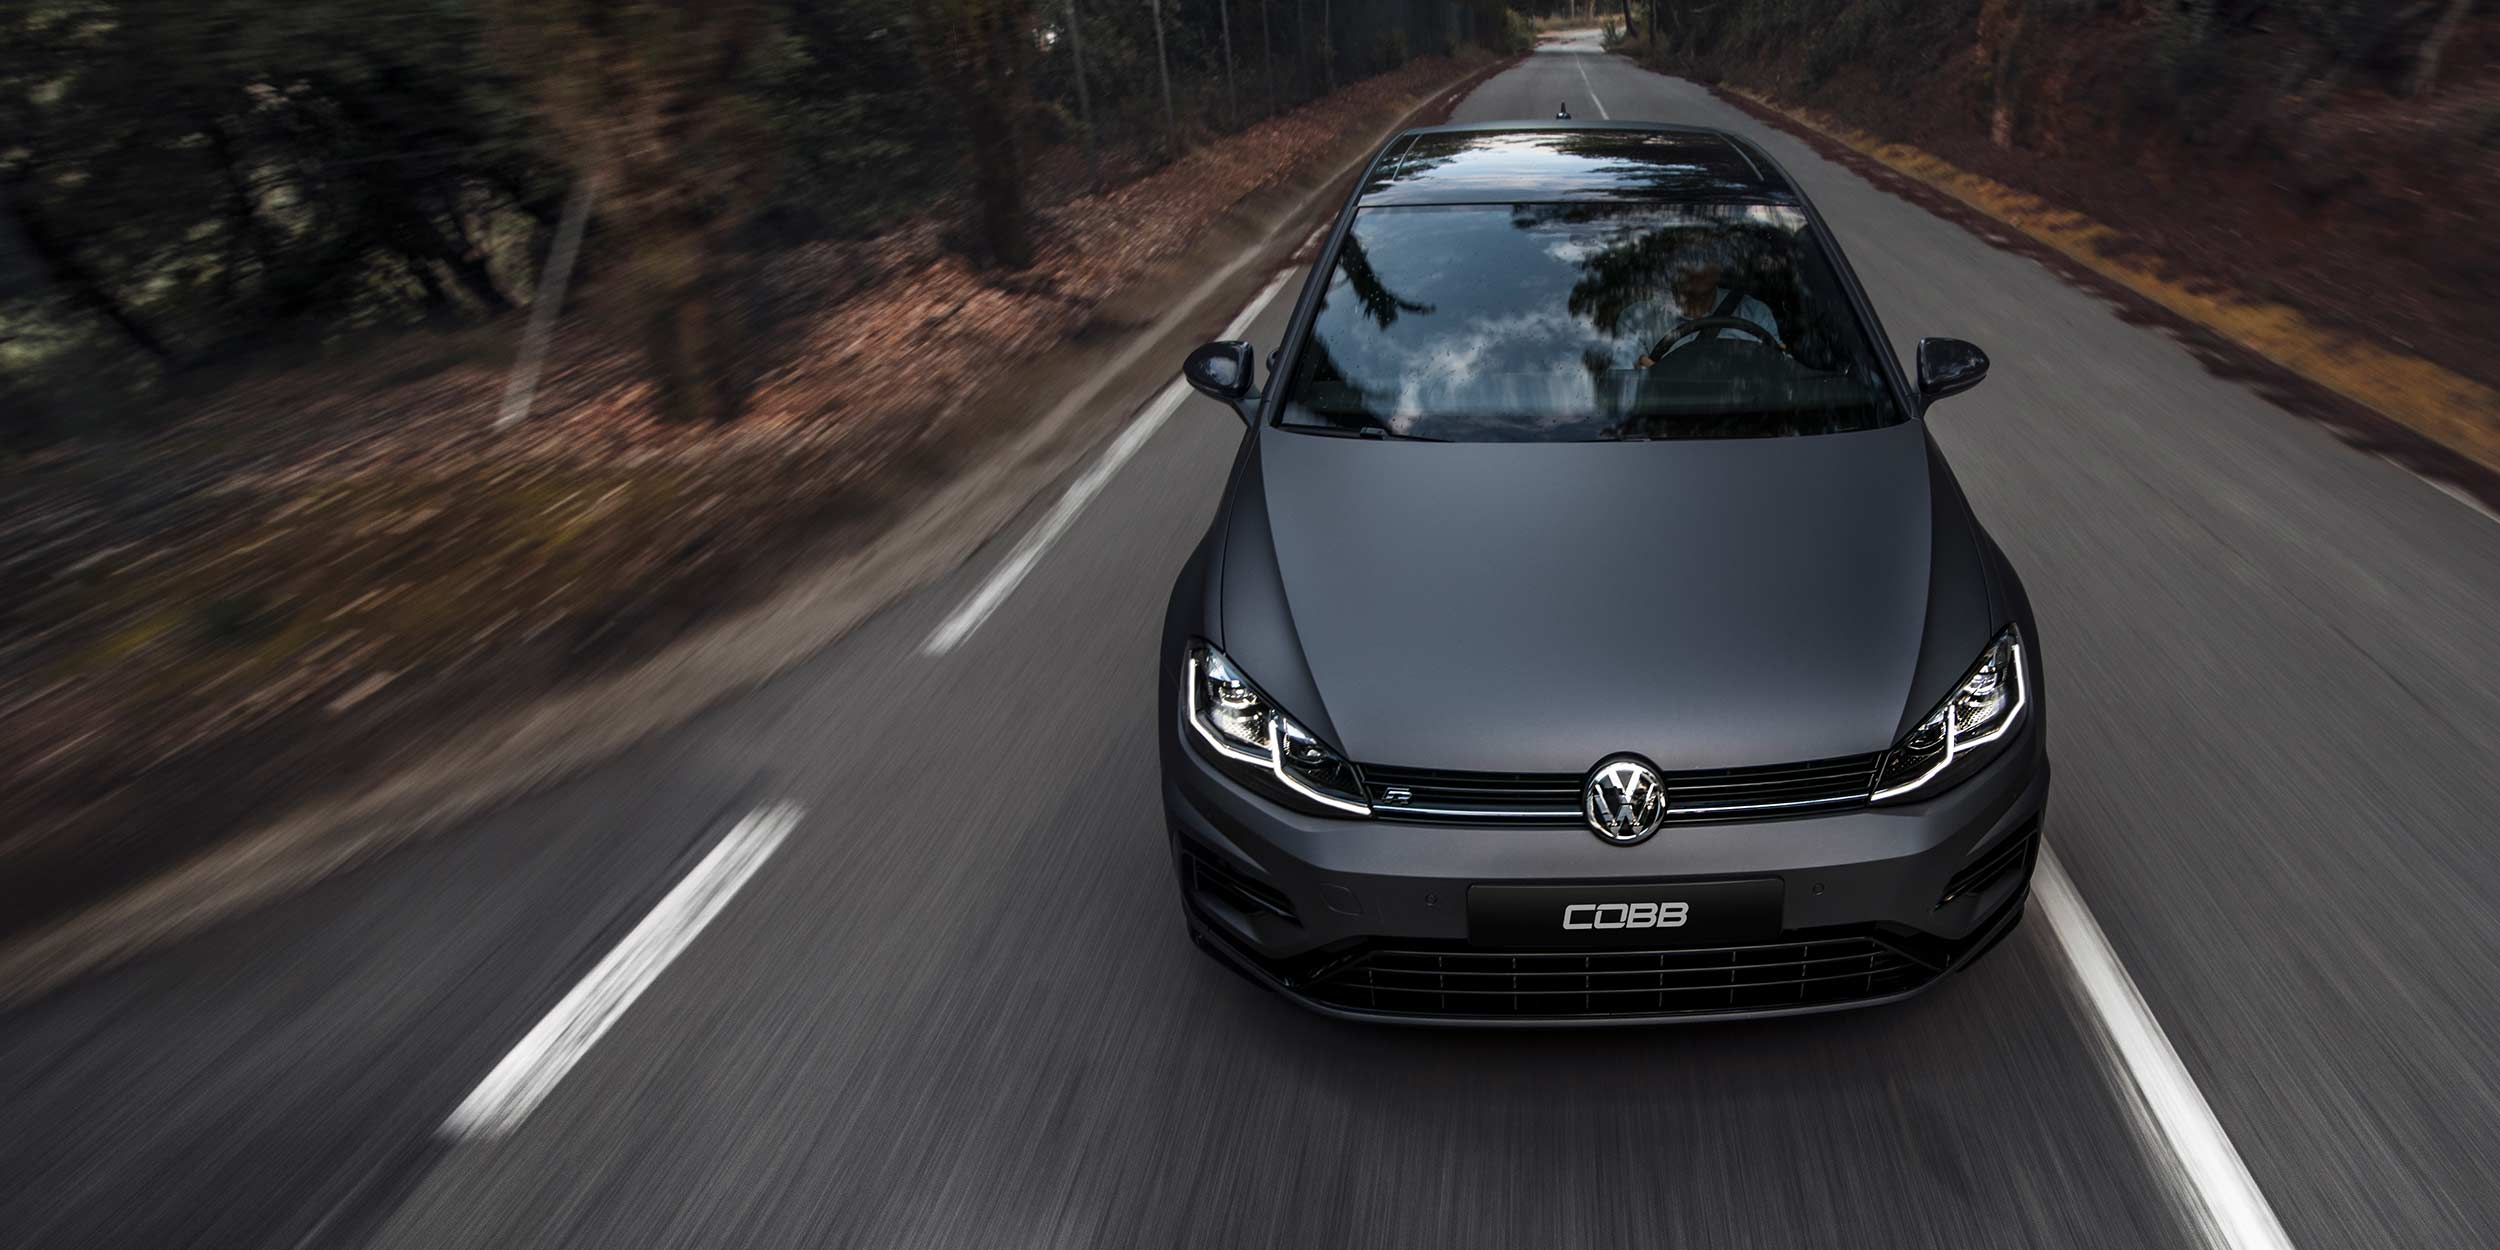 COBB Tuning - Home page